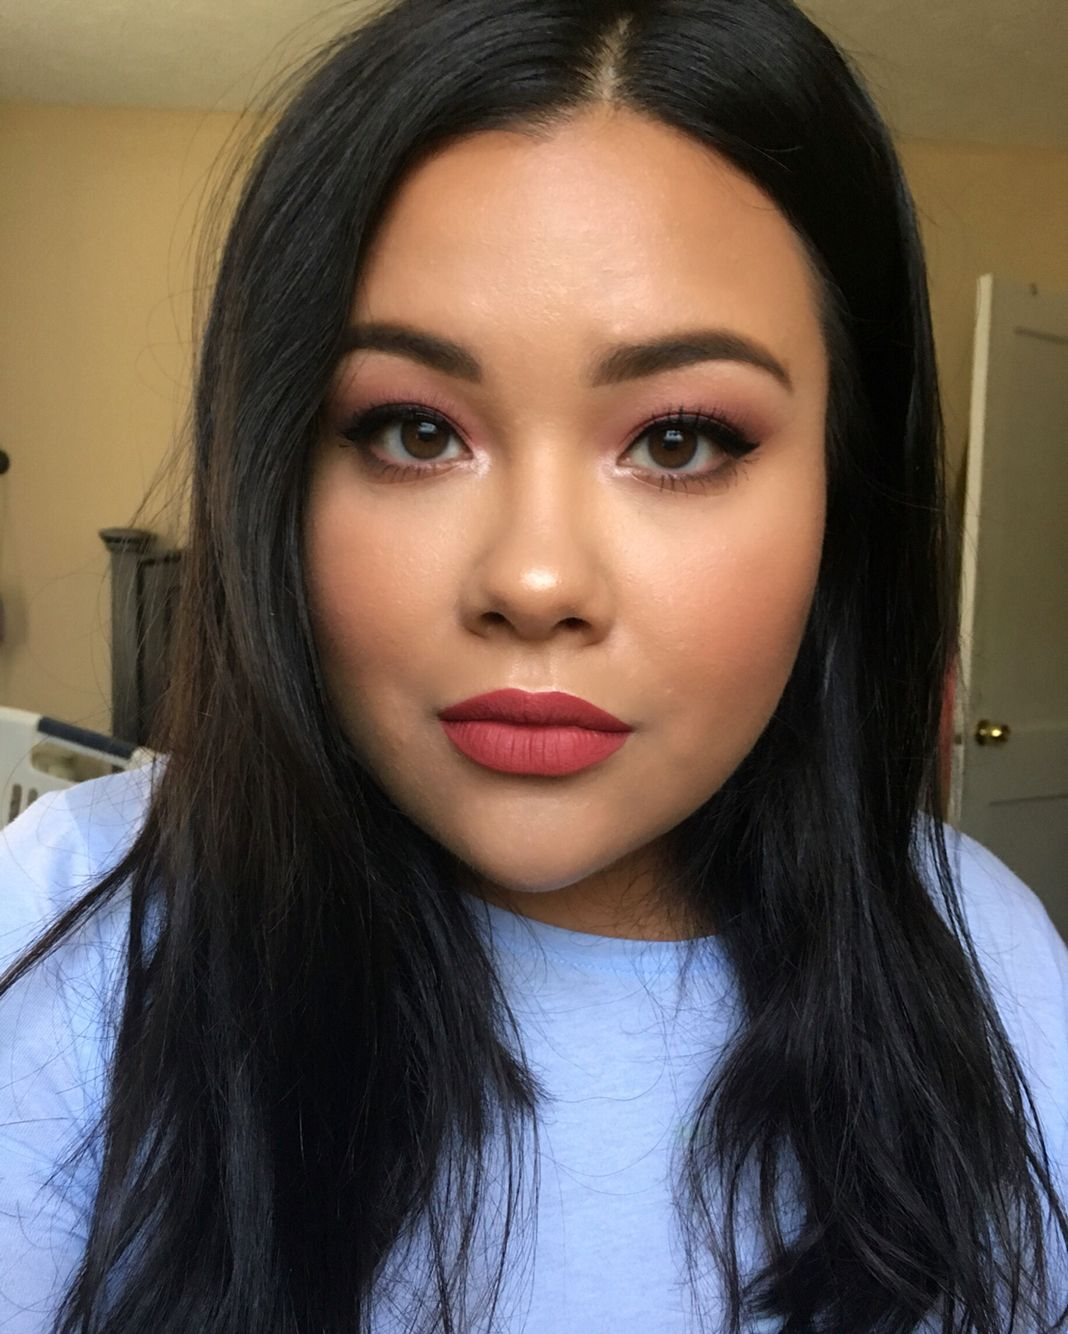 Kathryn by Anastasia Beverly Hills Eye makeup, Too faced